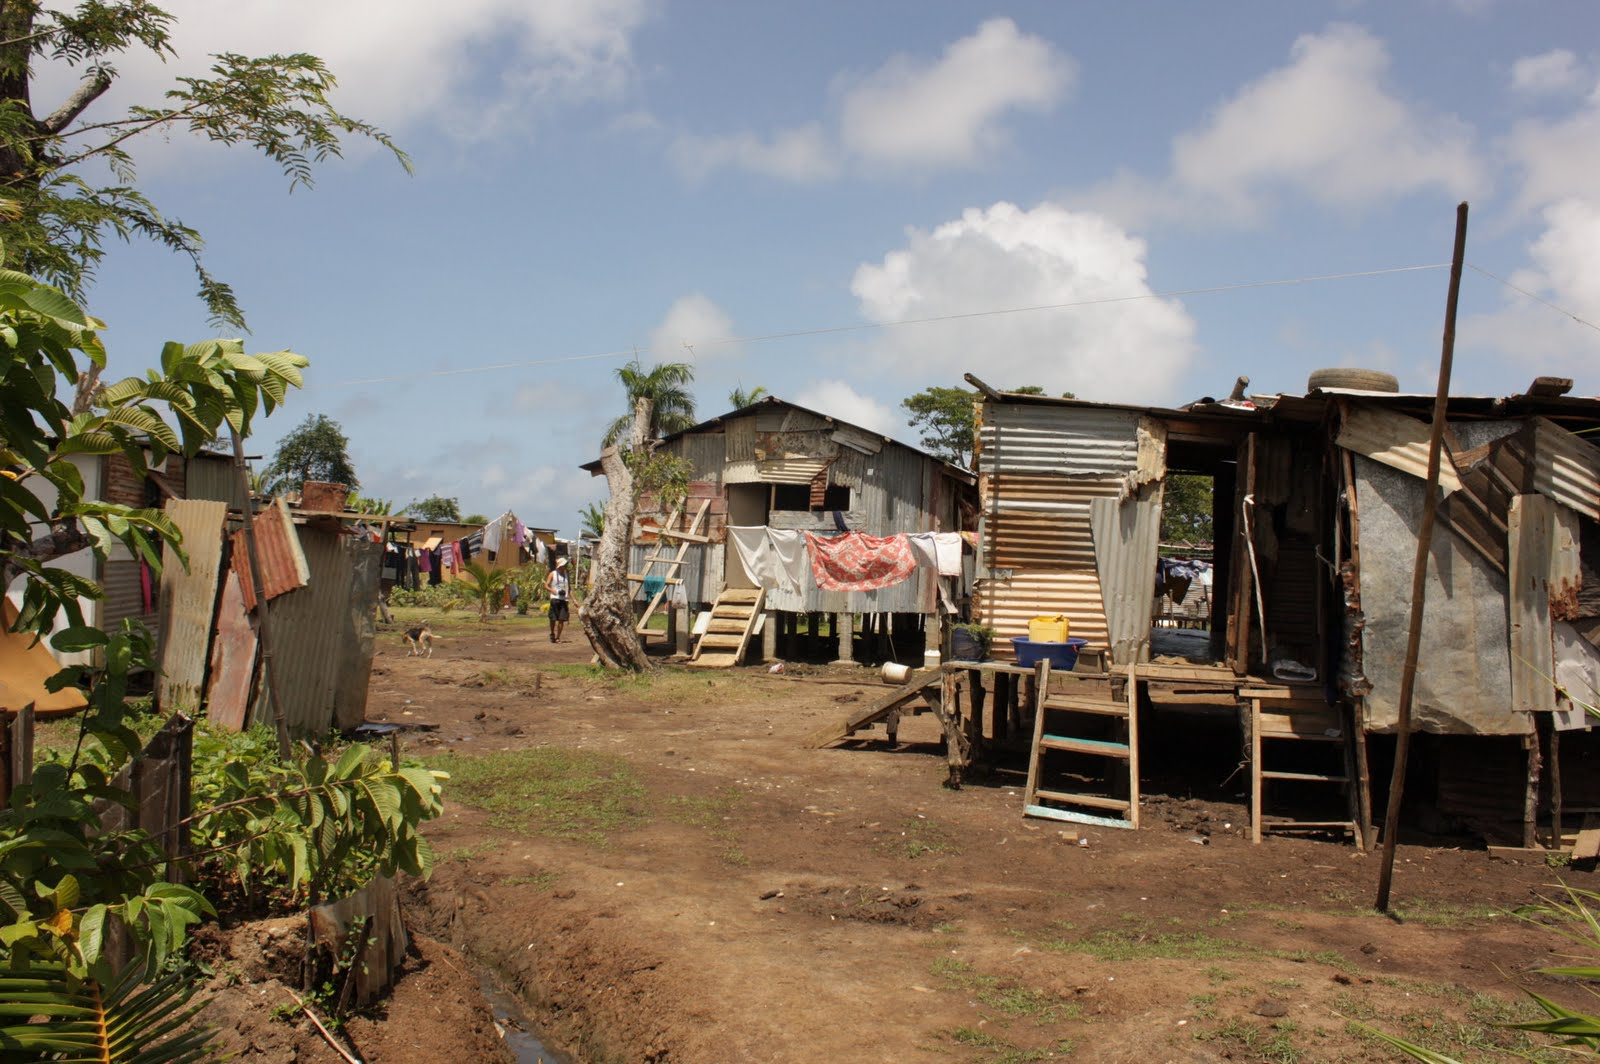 Poverty in villages of Fiji